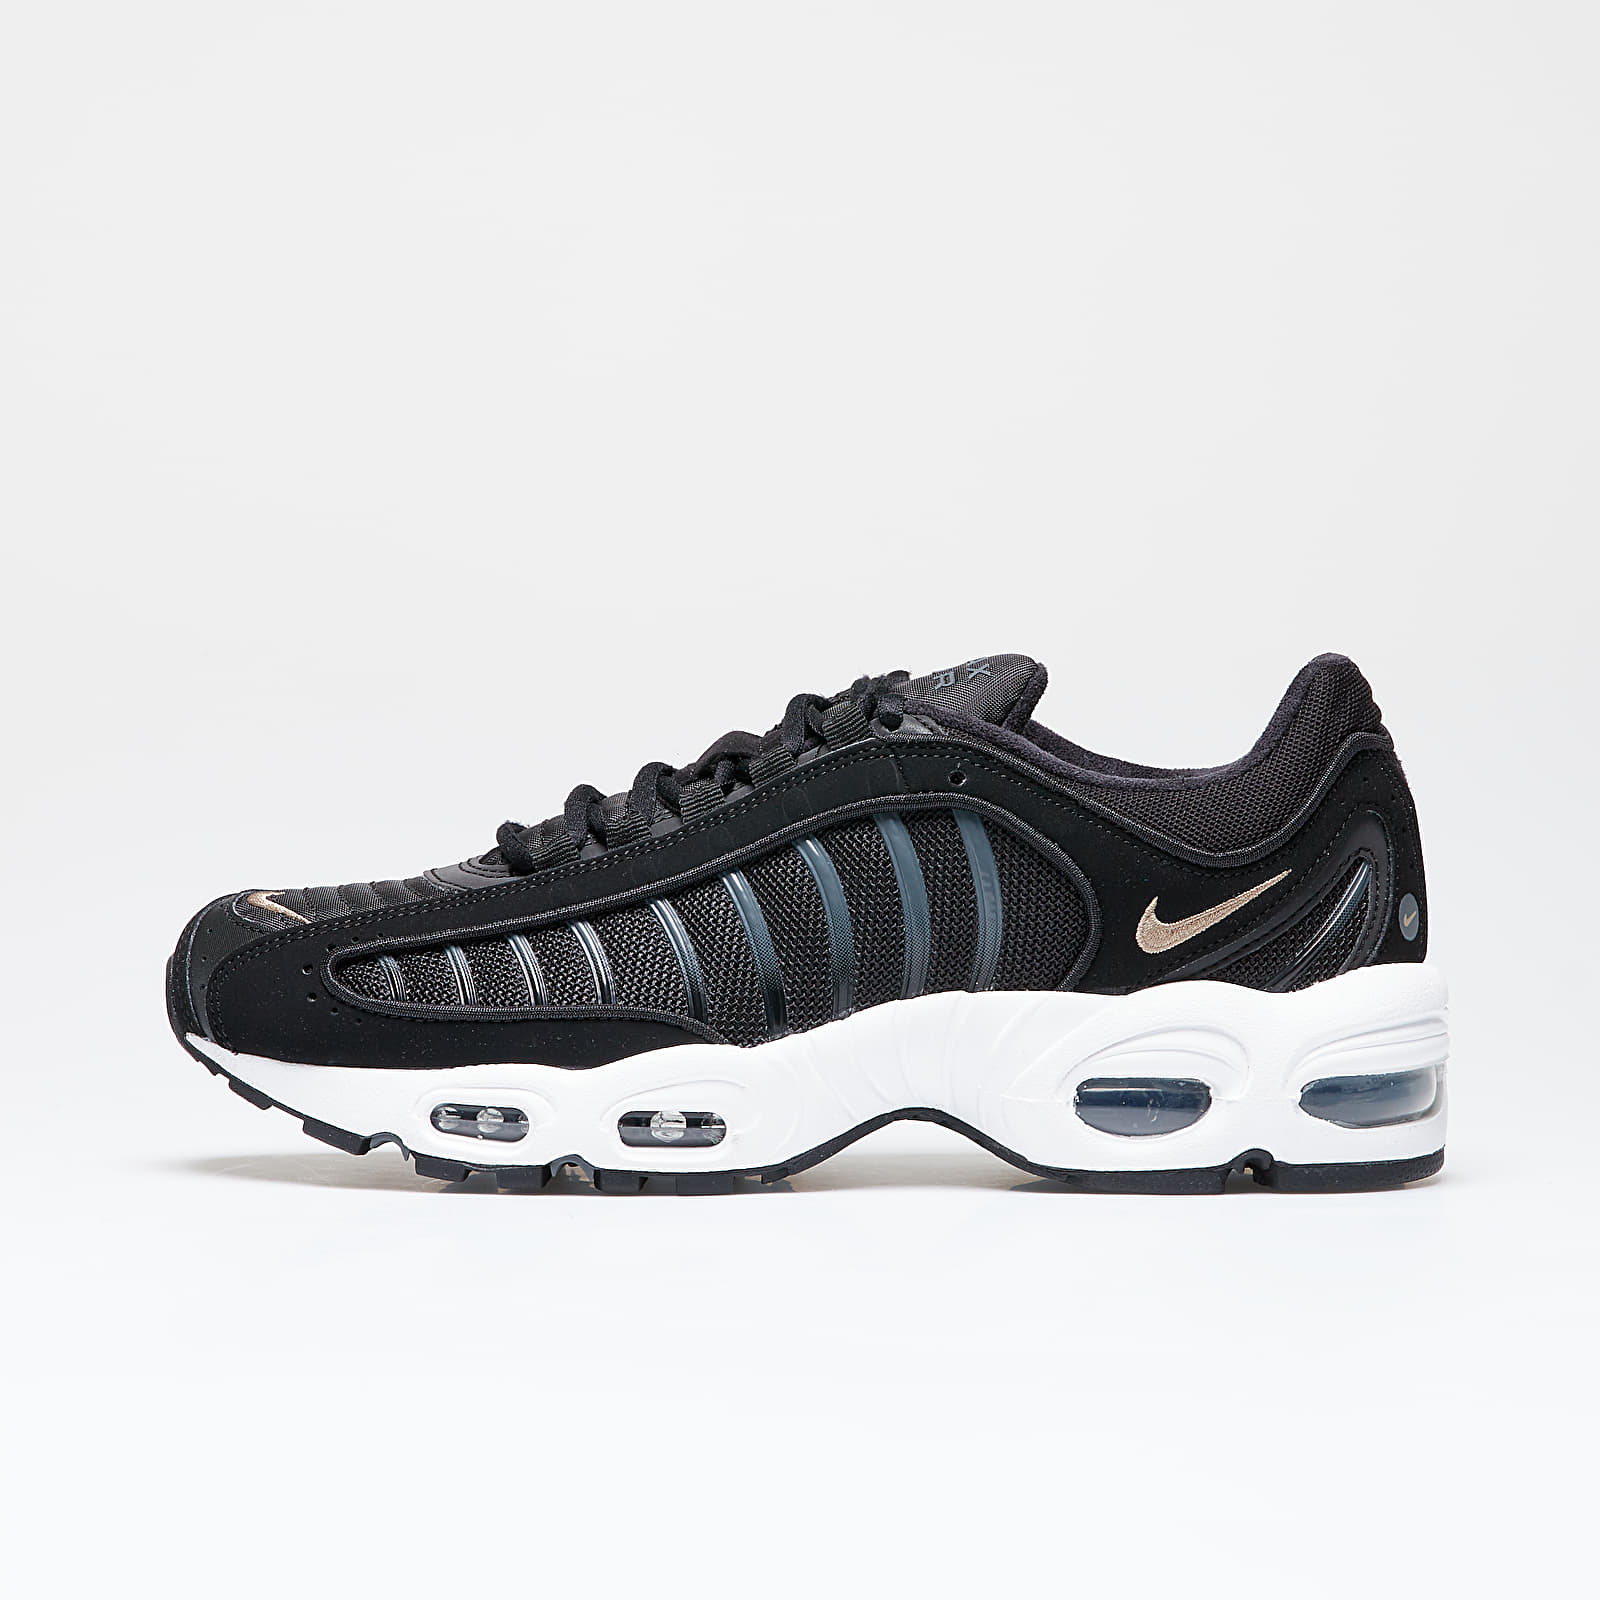 Chaussures et baskets homme Nike Air Max Tailwind IV Black/ Khaki-Iron Grey-White